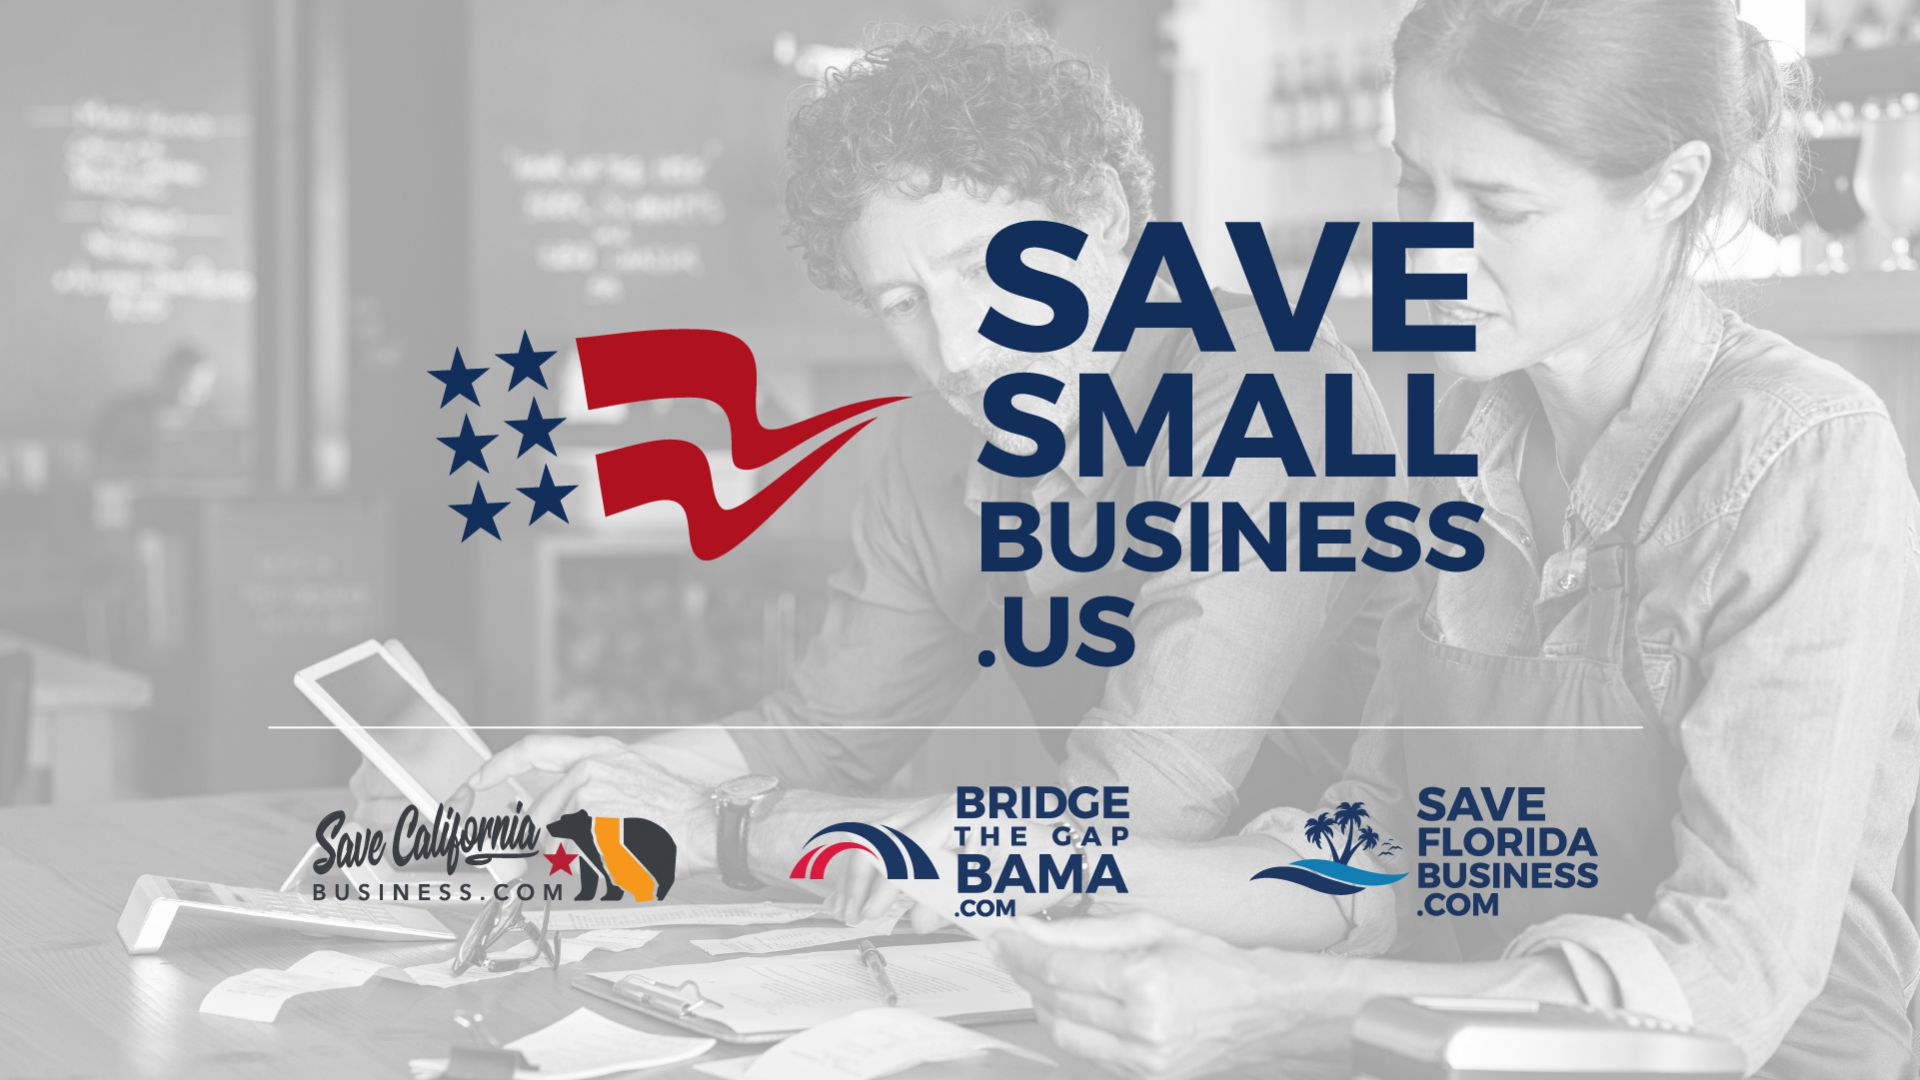 Save Small Business US